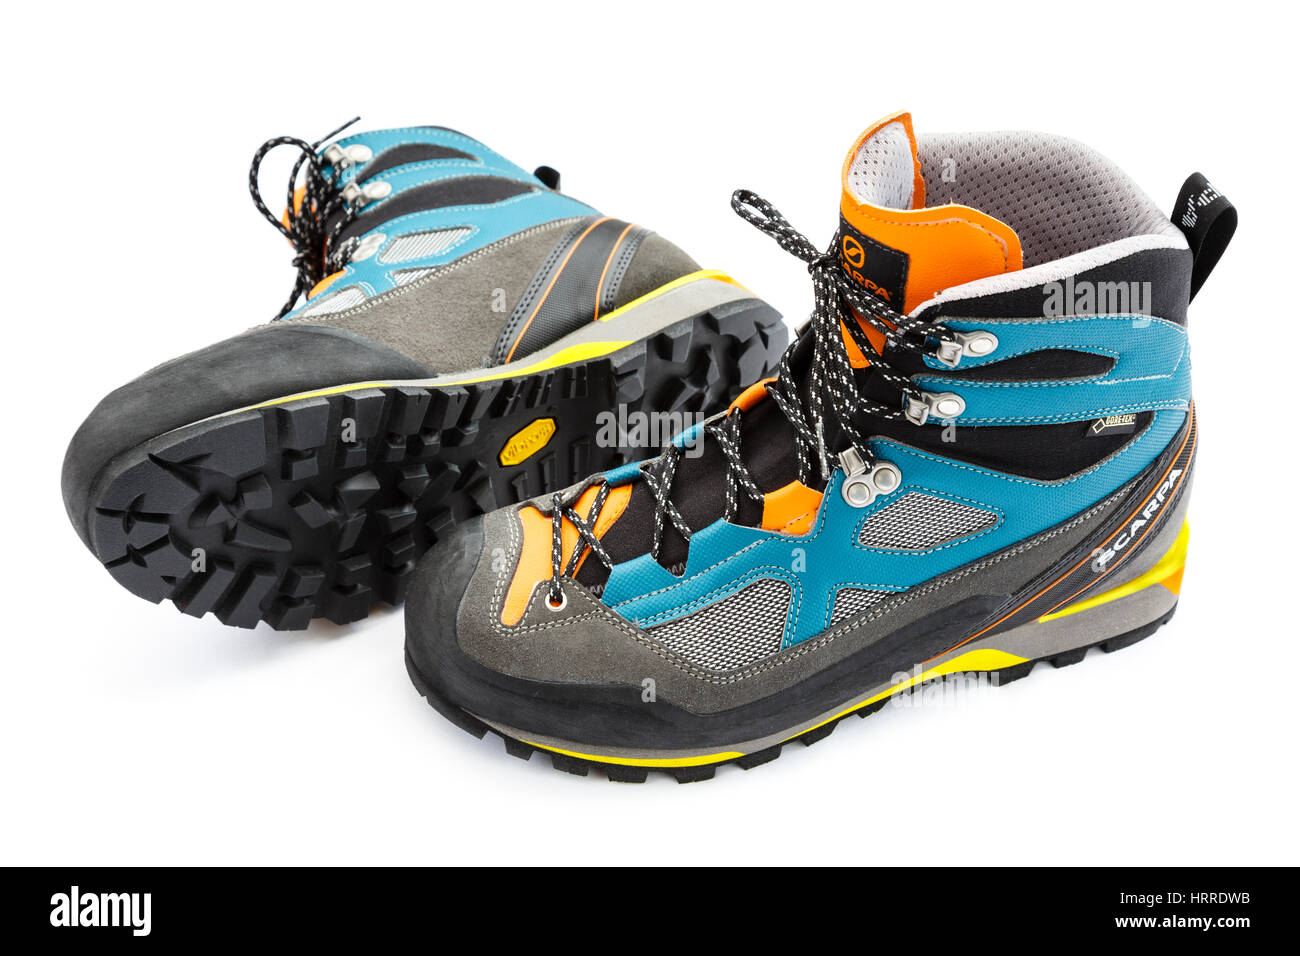 buy online 8014f 158b8 Scarpa Rebel Lite GTX Gore-Tex lined hiking boots with ...